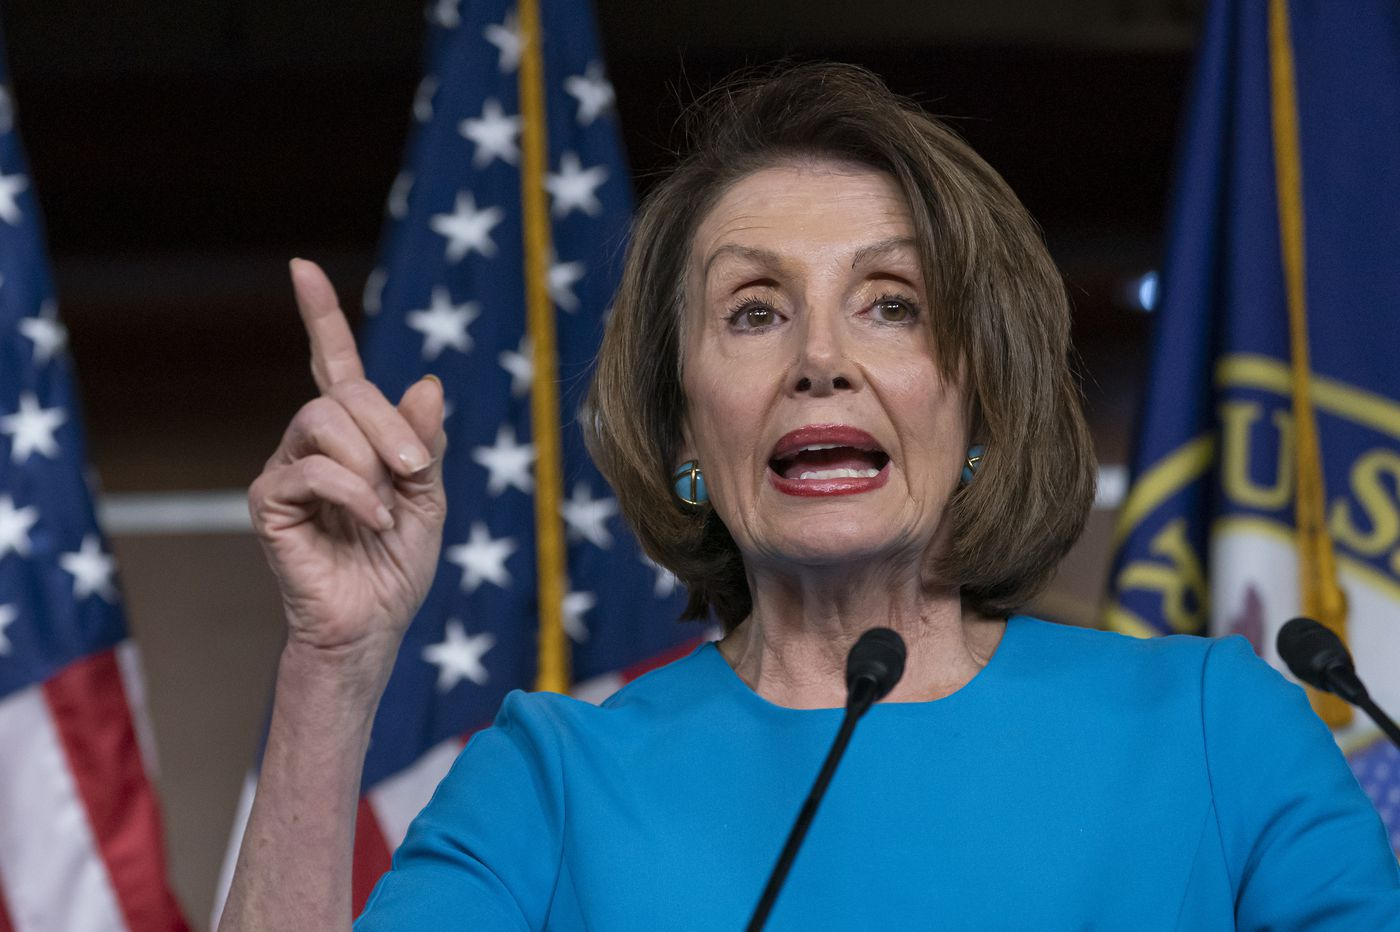 Nancy Pelosi's Democratic leadership team strikes rebellious tone, presses her to begin impeachment inquiry